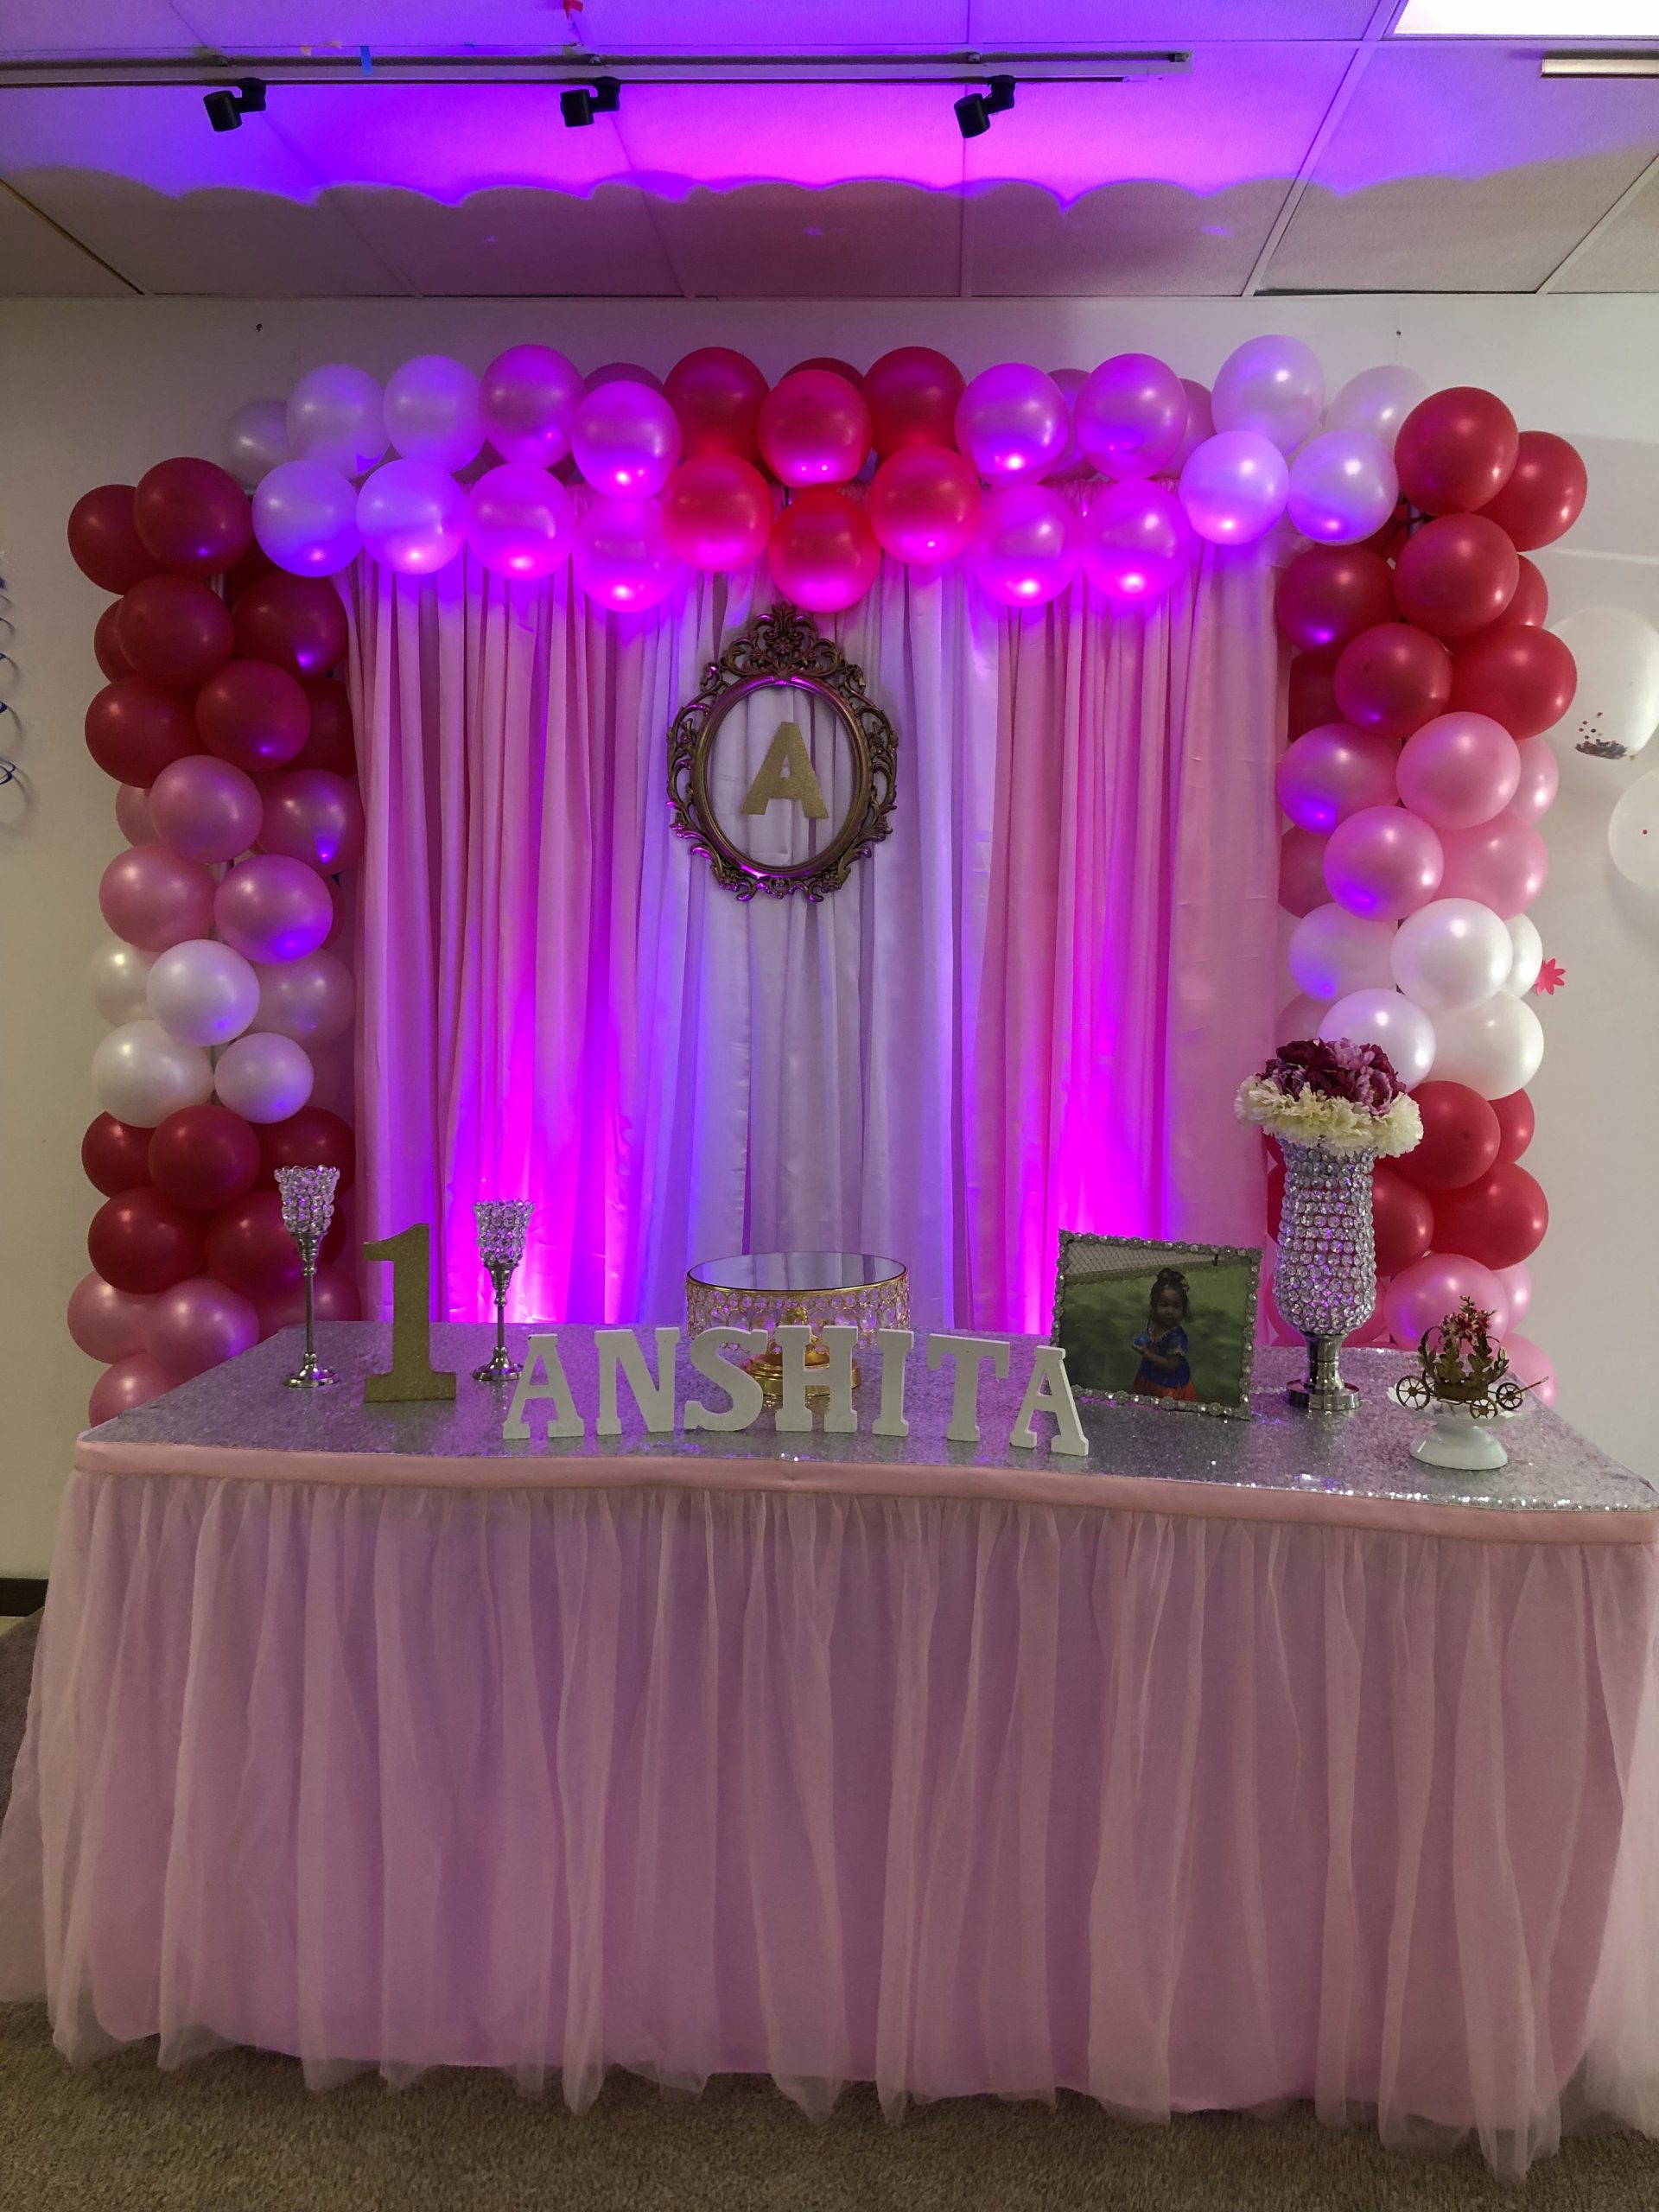 First Birthday Decoration Ideas Girl Awesome Baby Girl First Birthday Decorations at Biryani Pot Duluth